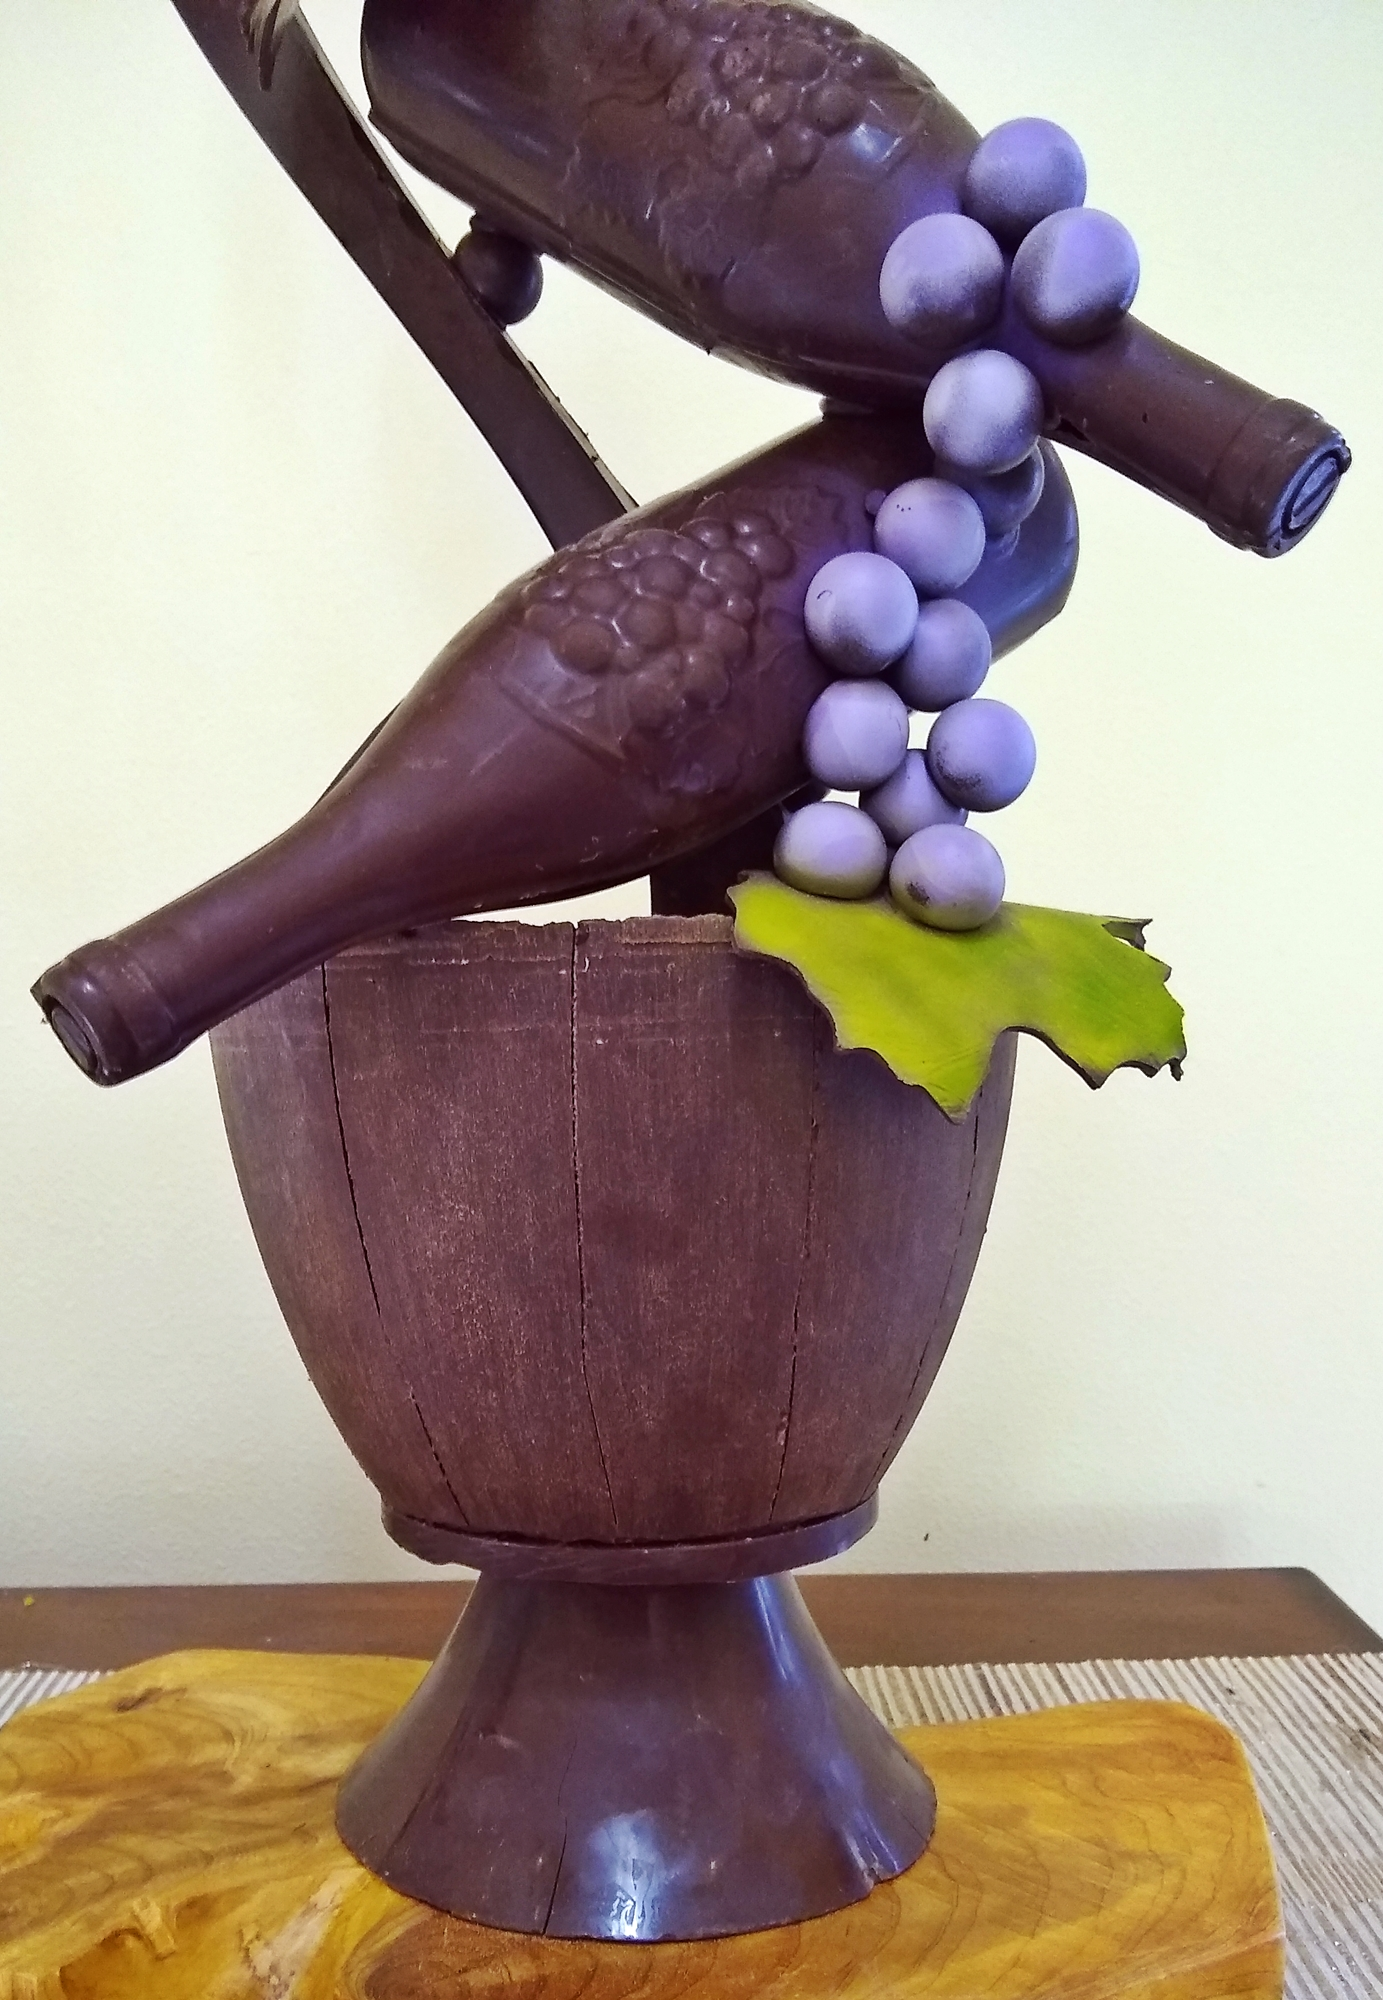 A closer view of the chocolate sculpture